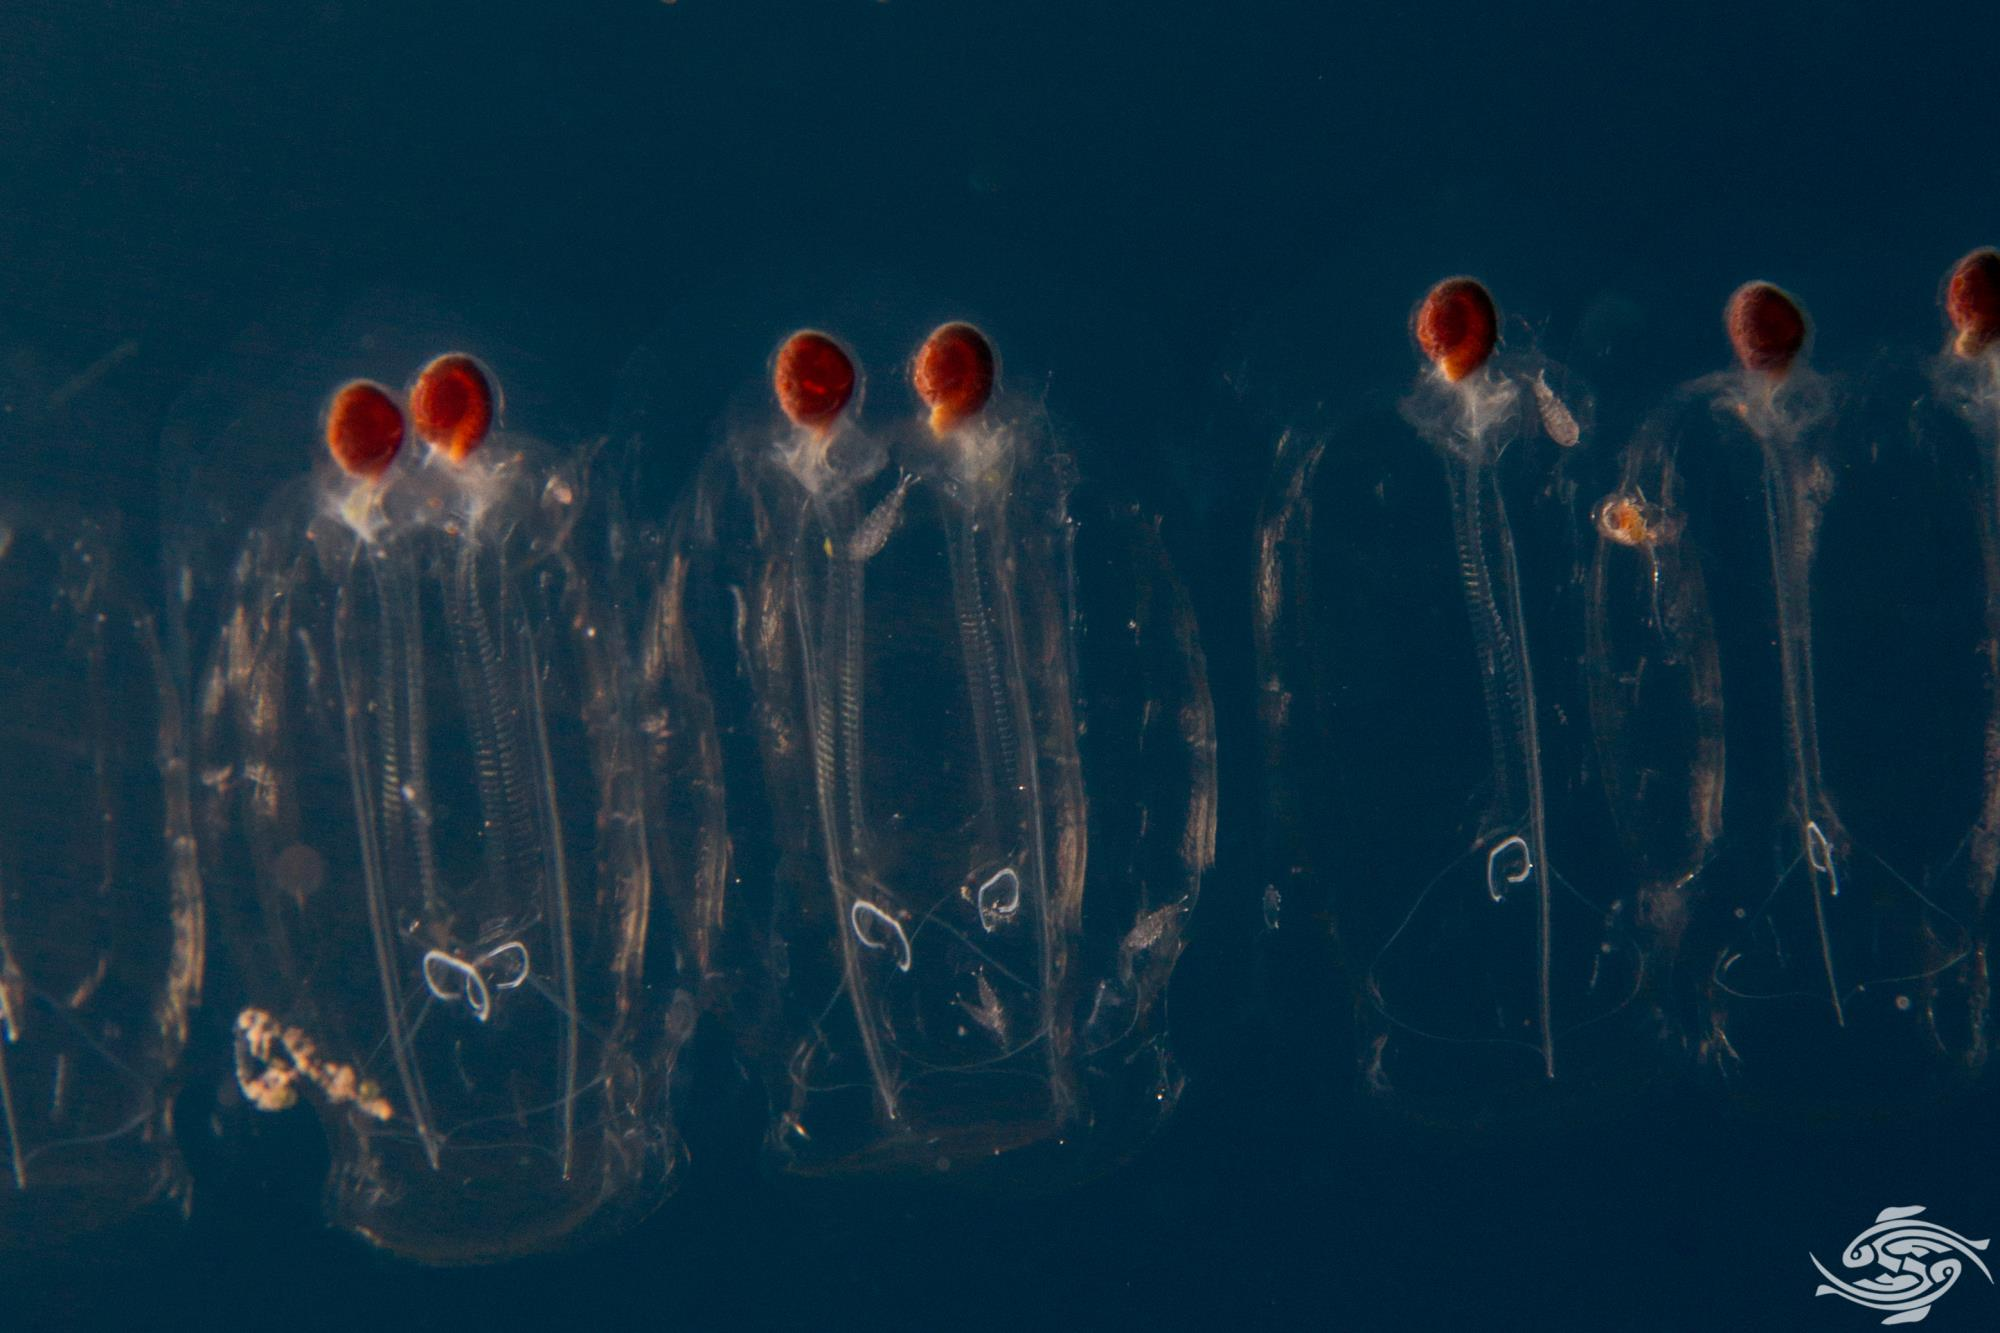 Leucothea species Salp